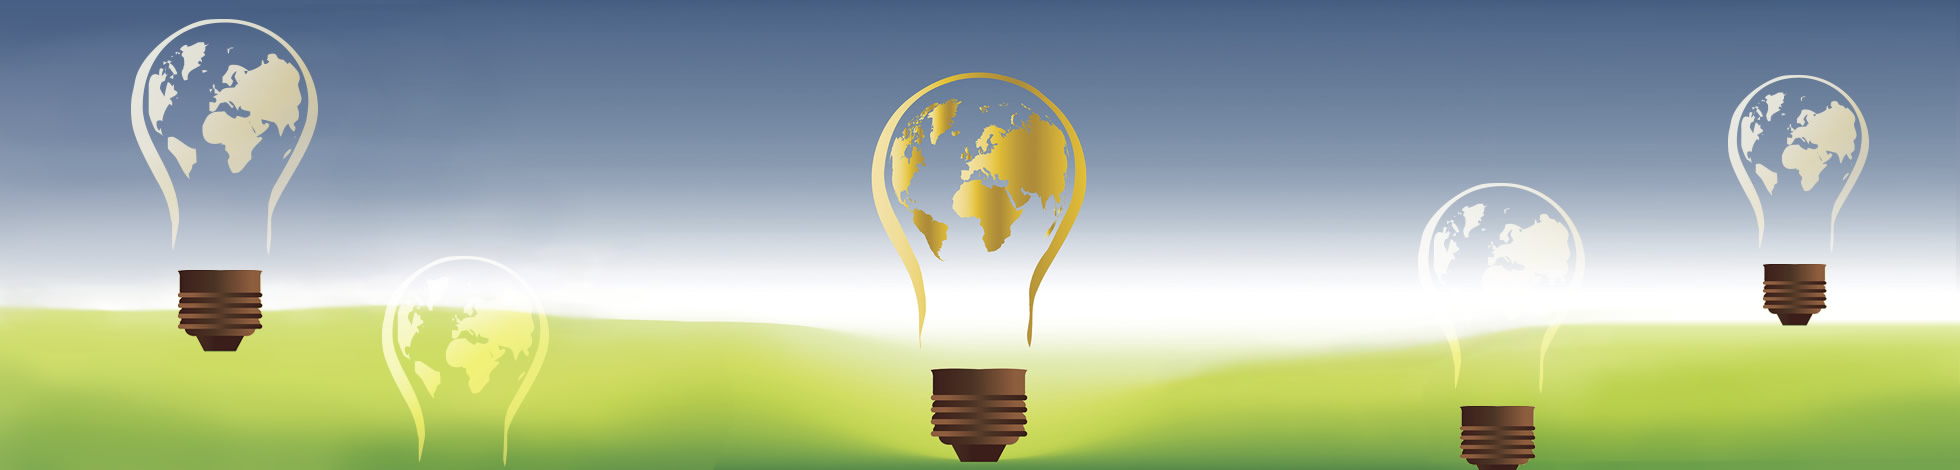 Energy efficiency in power and lighting